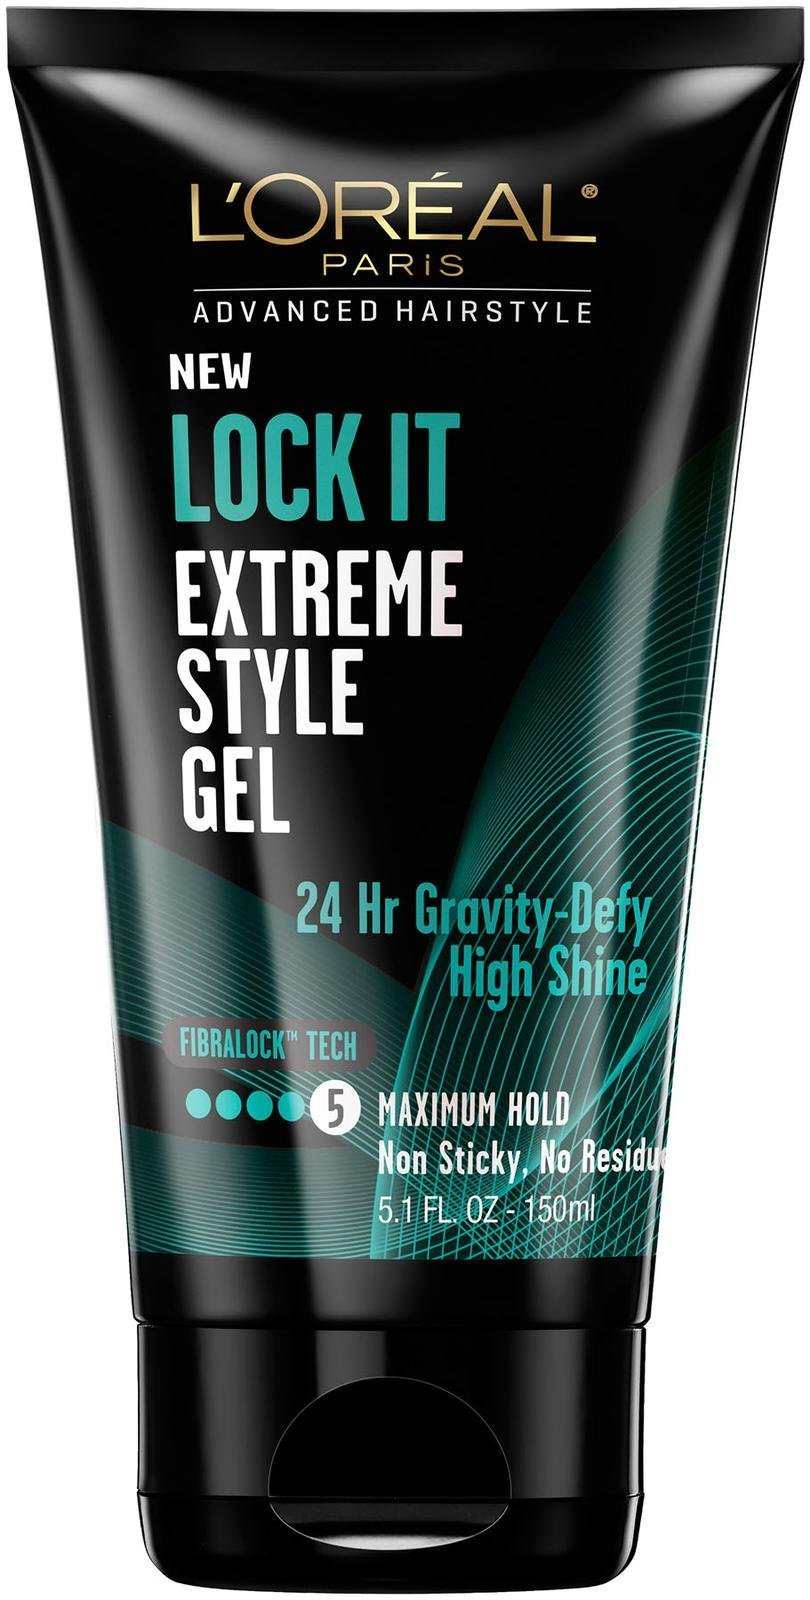 L'Oréal Paris Advanced Hairstyle LOCK IT Extreme Style Gel, 5.1 fl. oz. (Packaging May Vary)